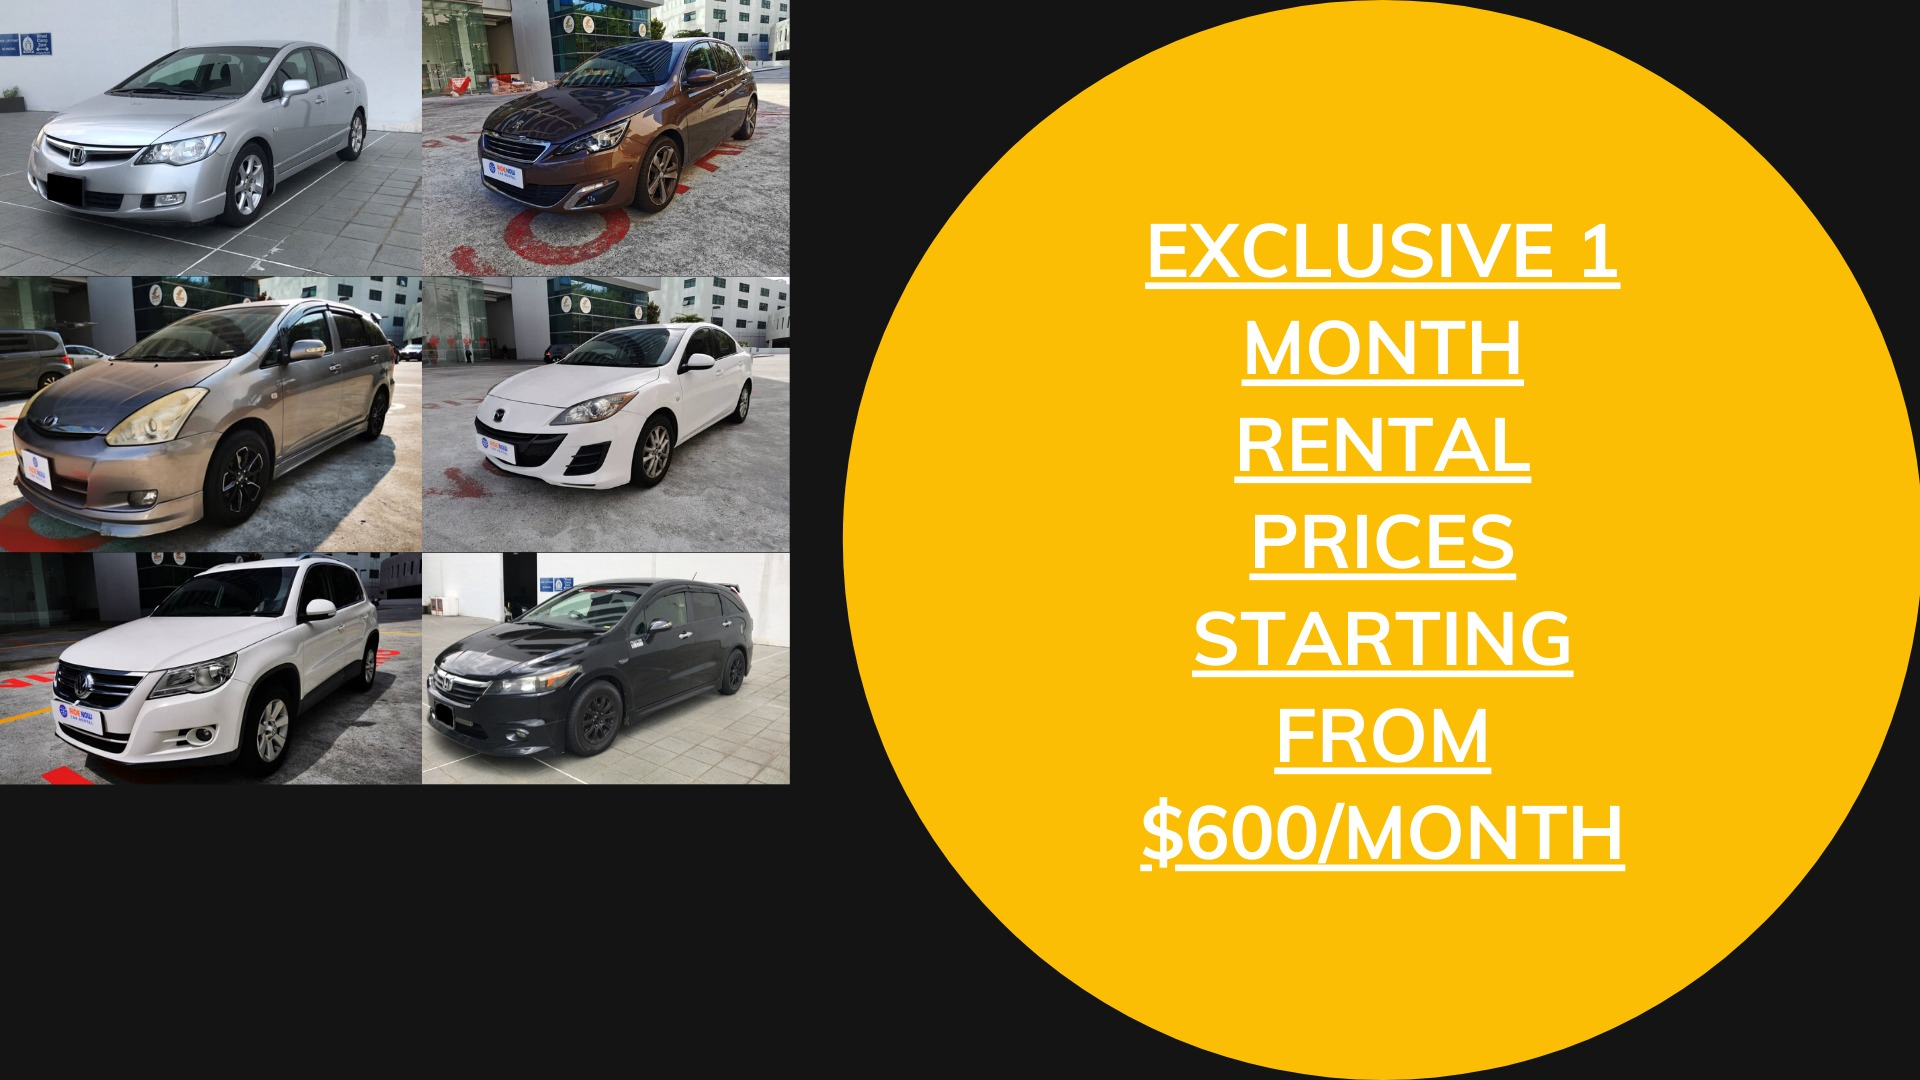 EXCLUSIVE 1 MONTH RENTAL PERIOD FOR PANDEMIC PERIOD ENQUIRE NOW!